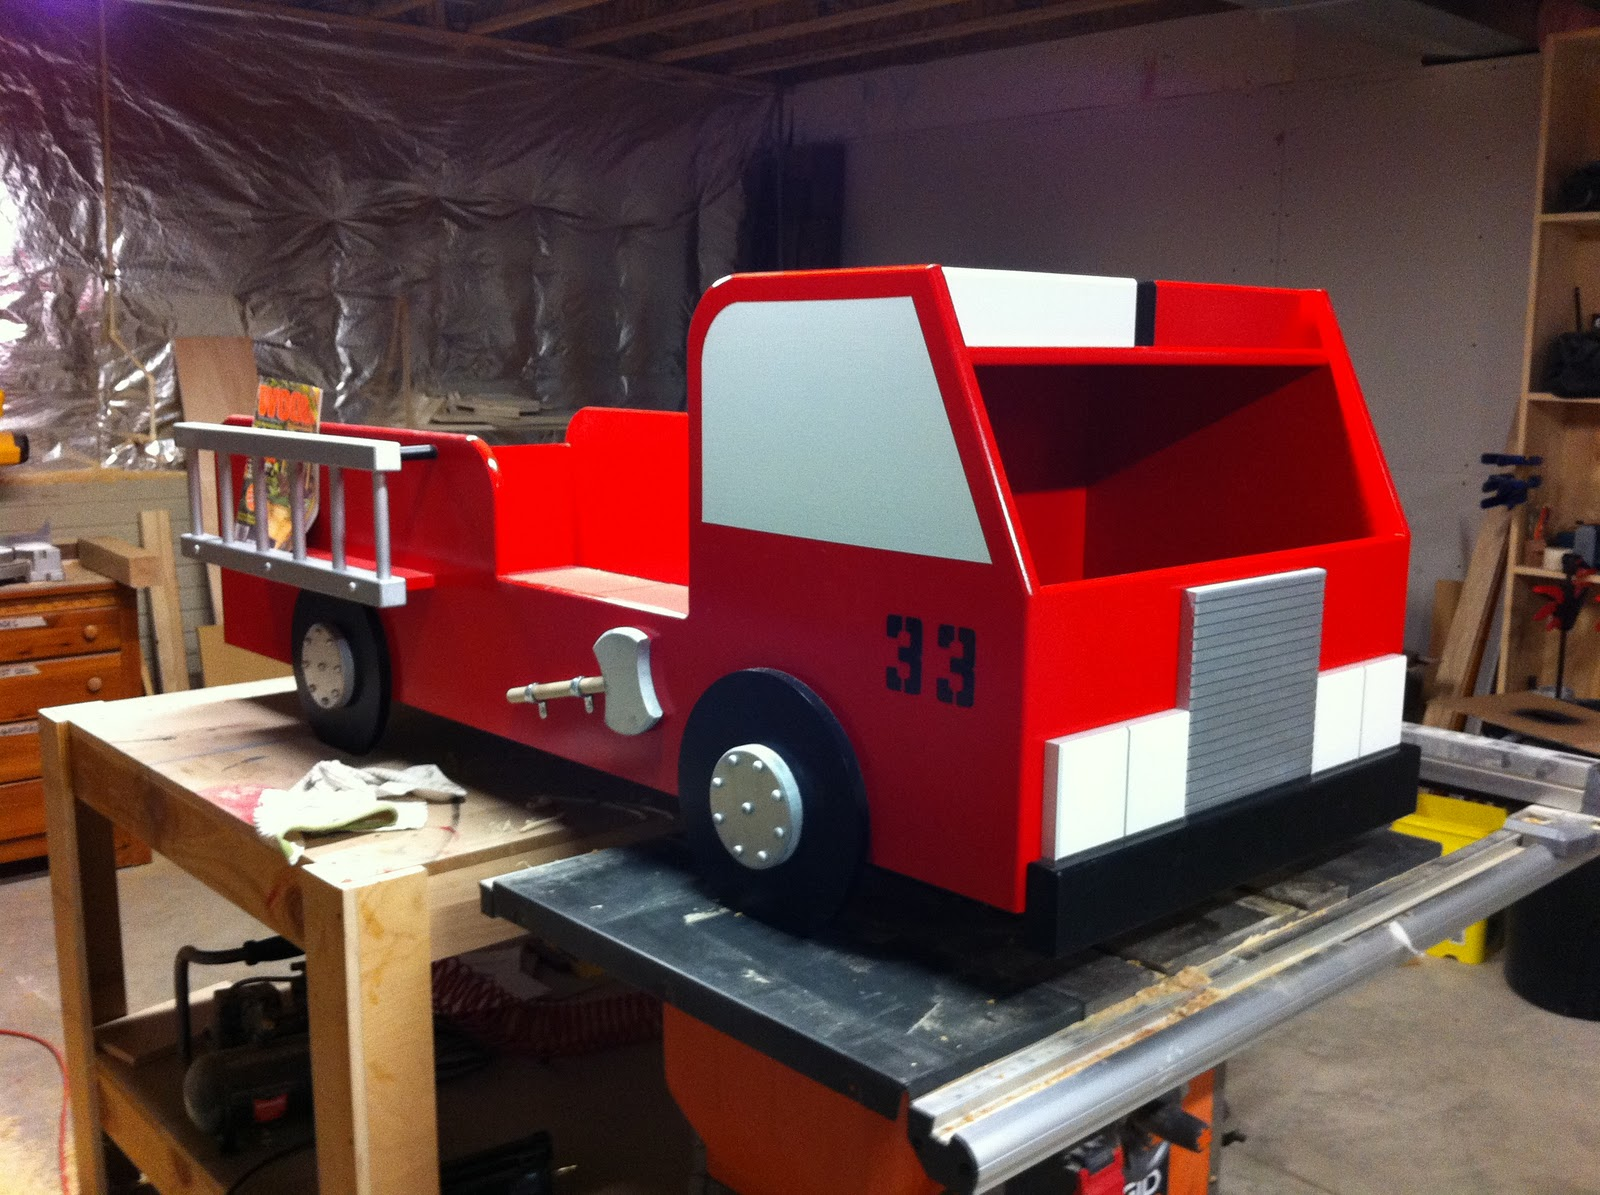 Fire truck toy box plans fire free engine image for user manual download - Fire engine bed plans ...